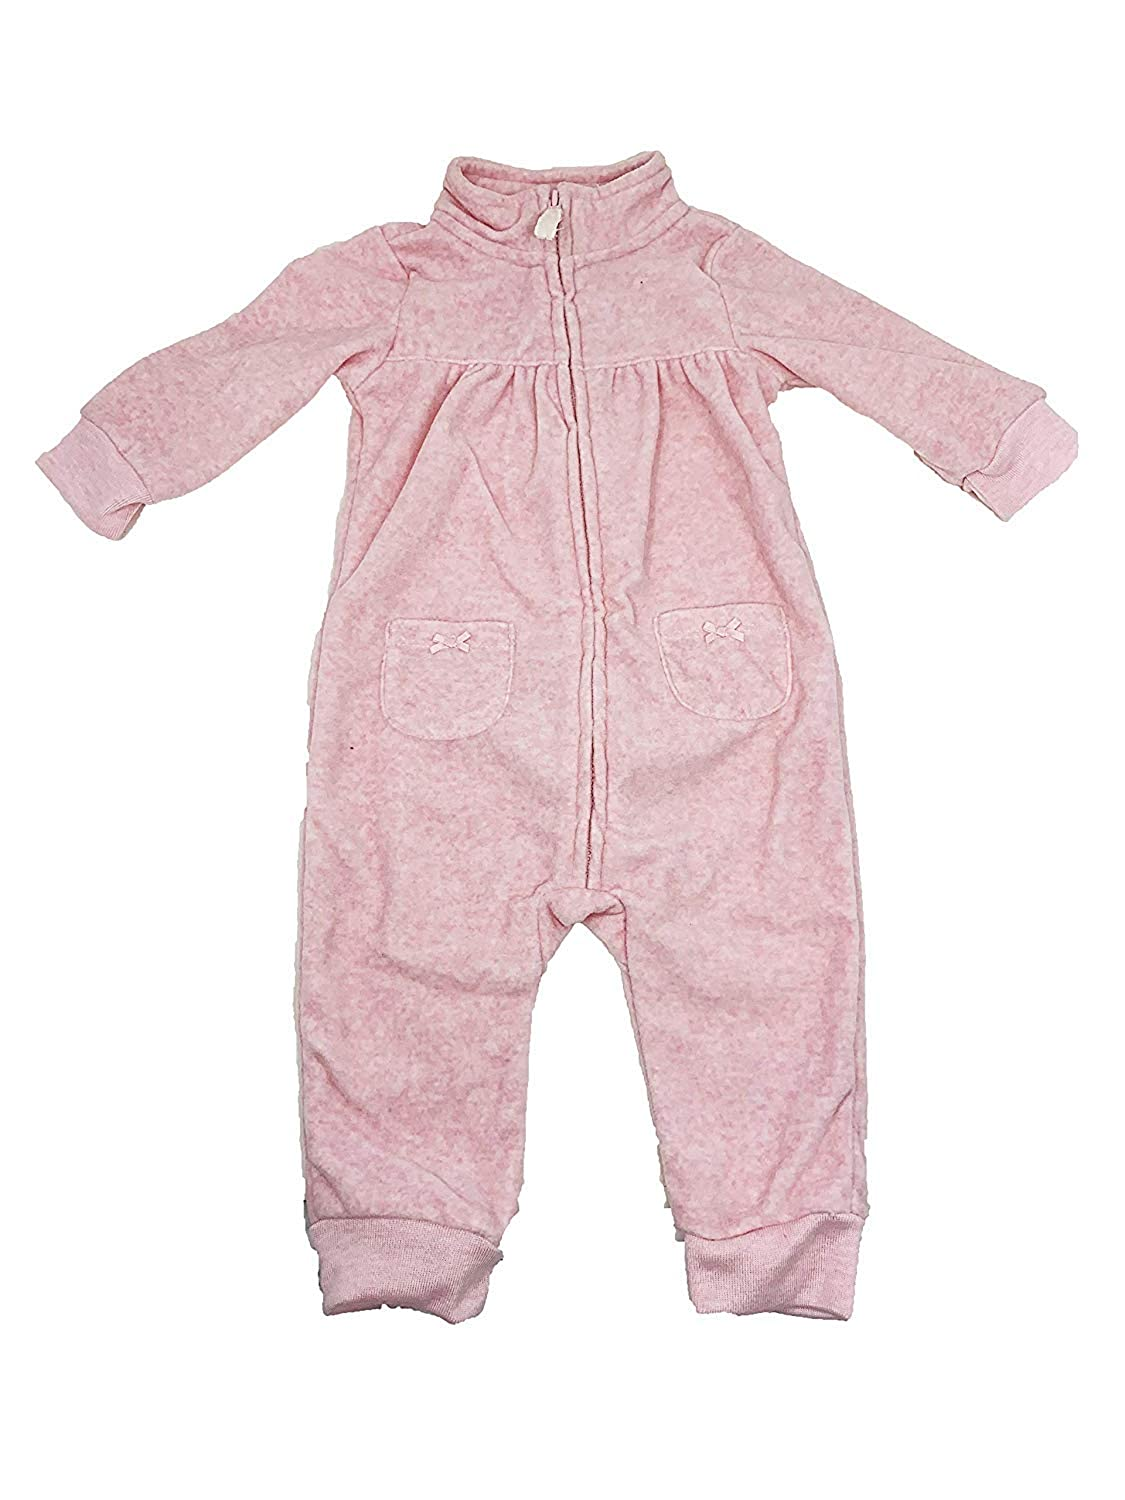 Carters Girls Baby Day to Night 3 Piece Layette Set